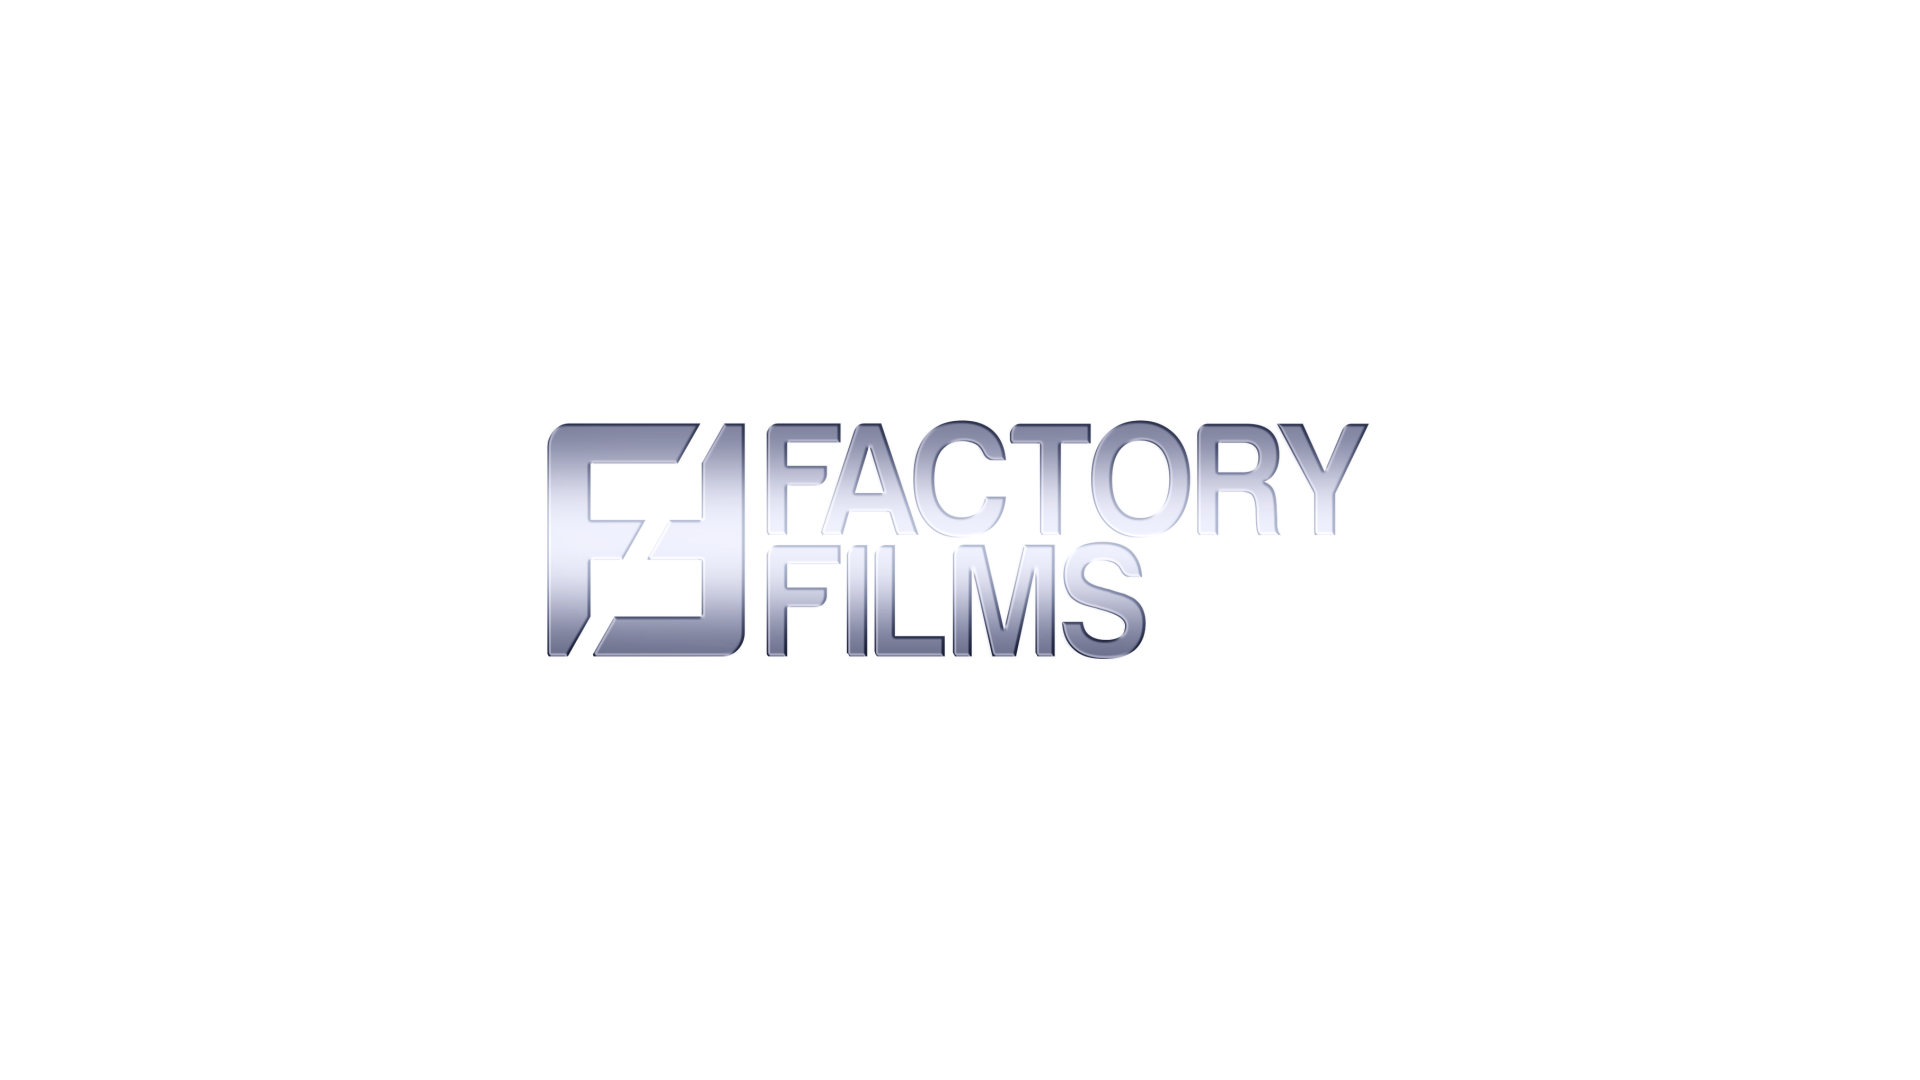 Factory Films logo